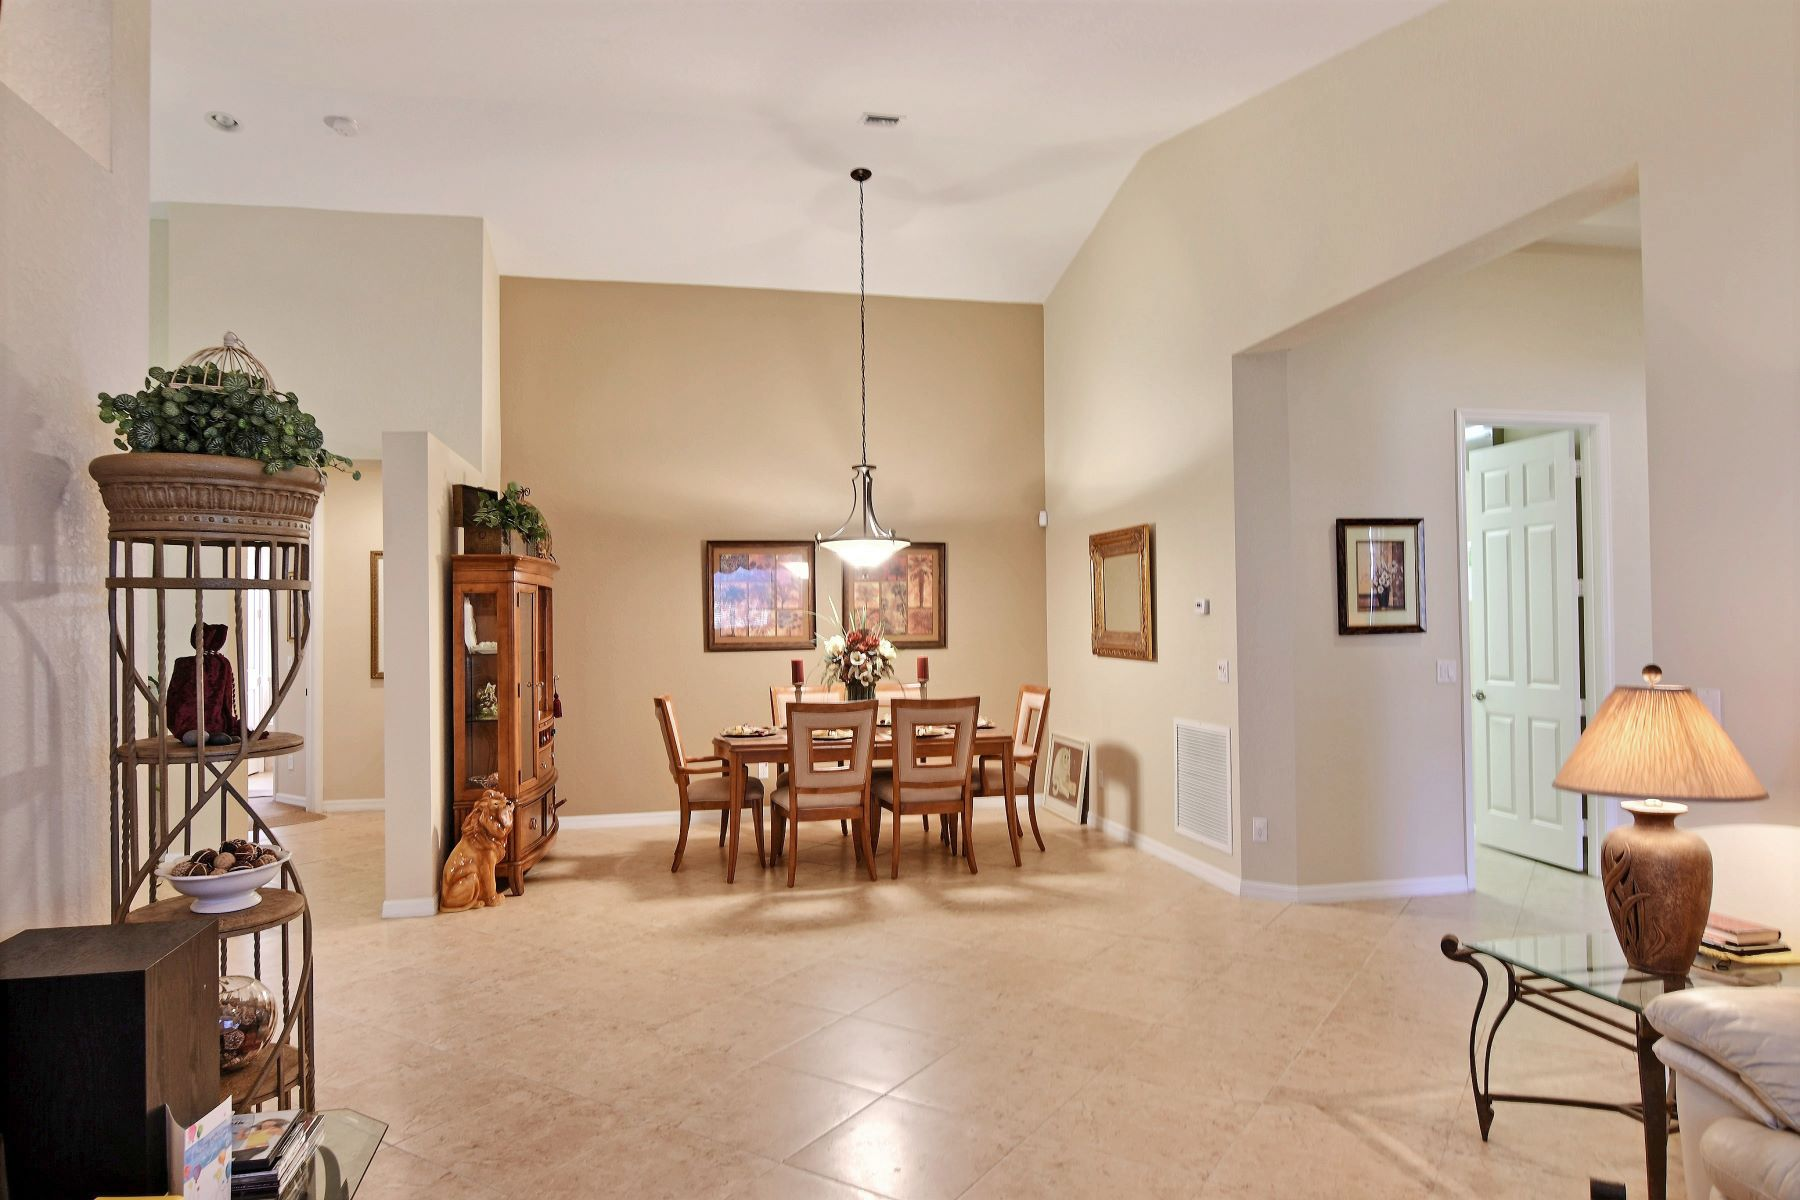 Additional photo for property listing at 6212 Coverty Place Vero Beach, Florida 32966 United States